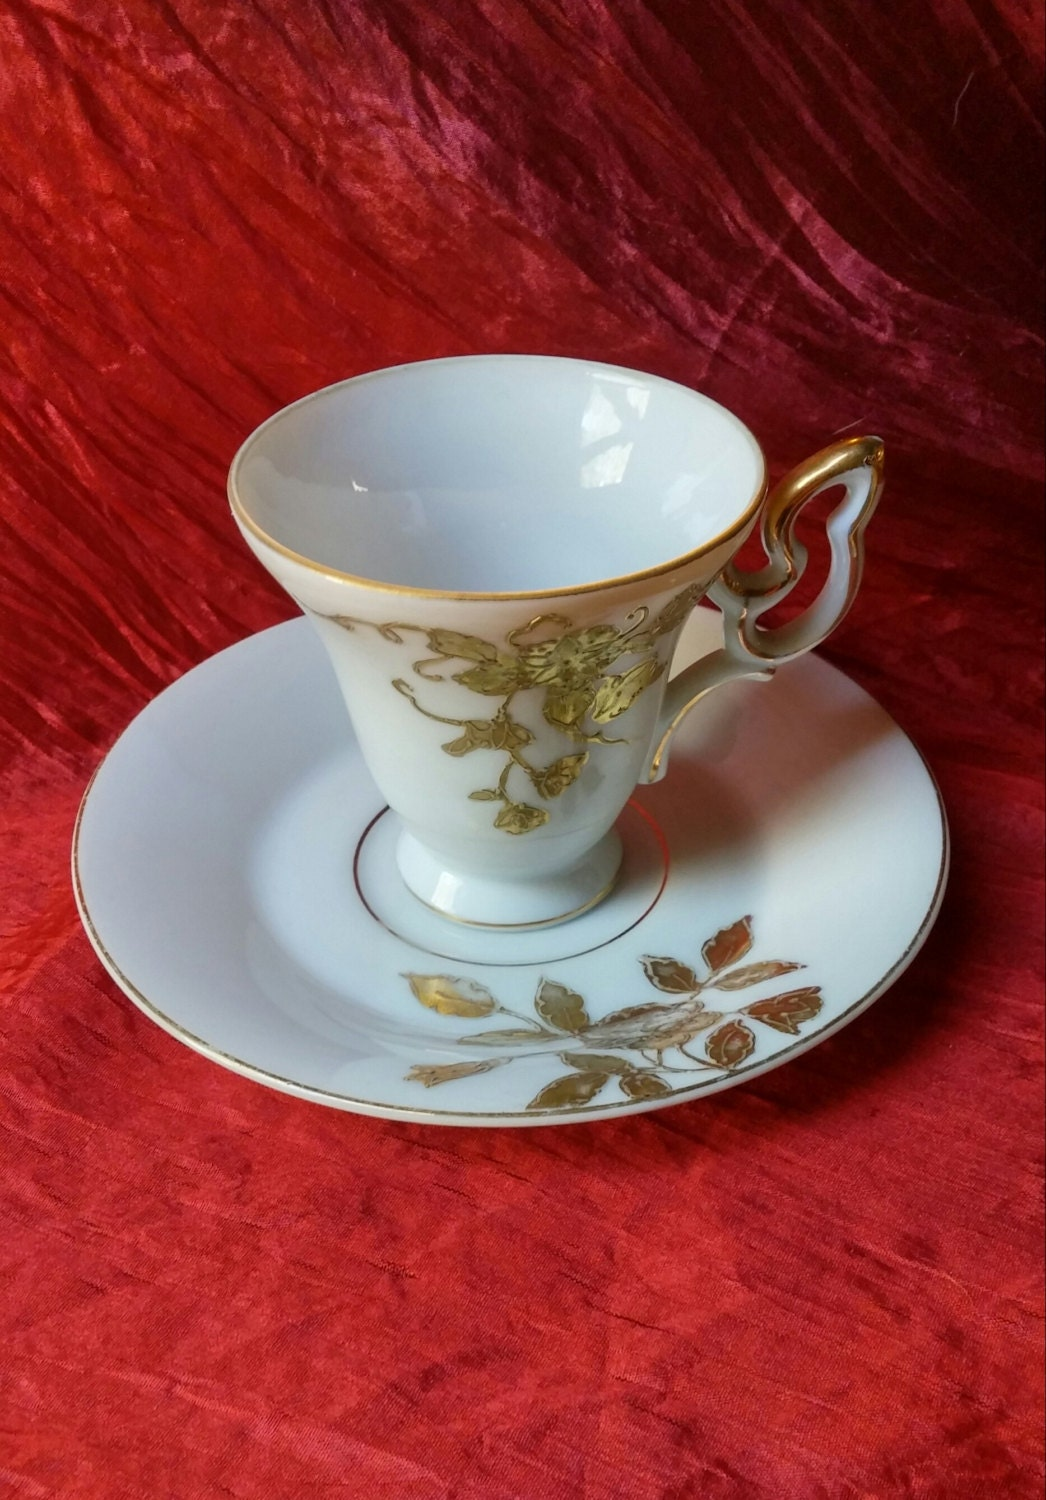 demitasse cup and saucer with gold floral pattern on white. Black Bedroom Furniture Sets. Home Design Ideas